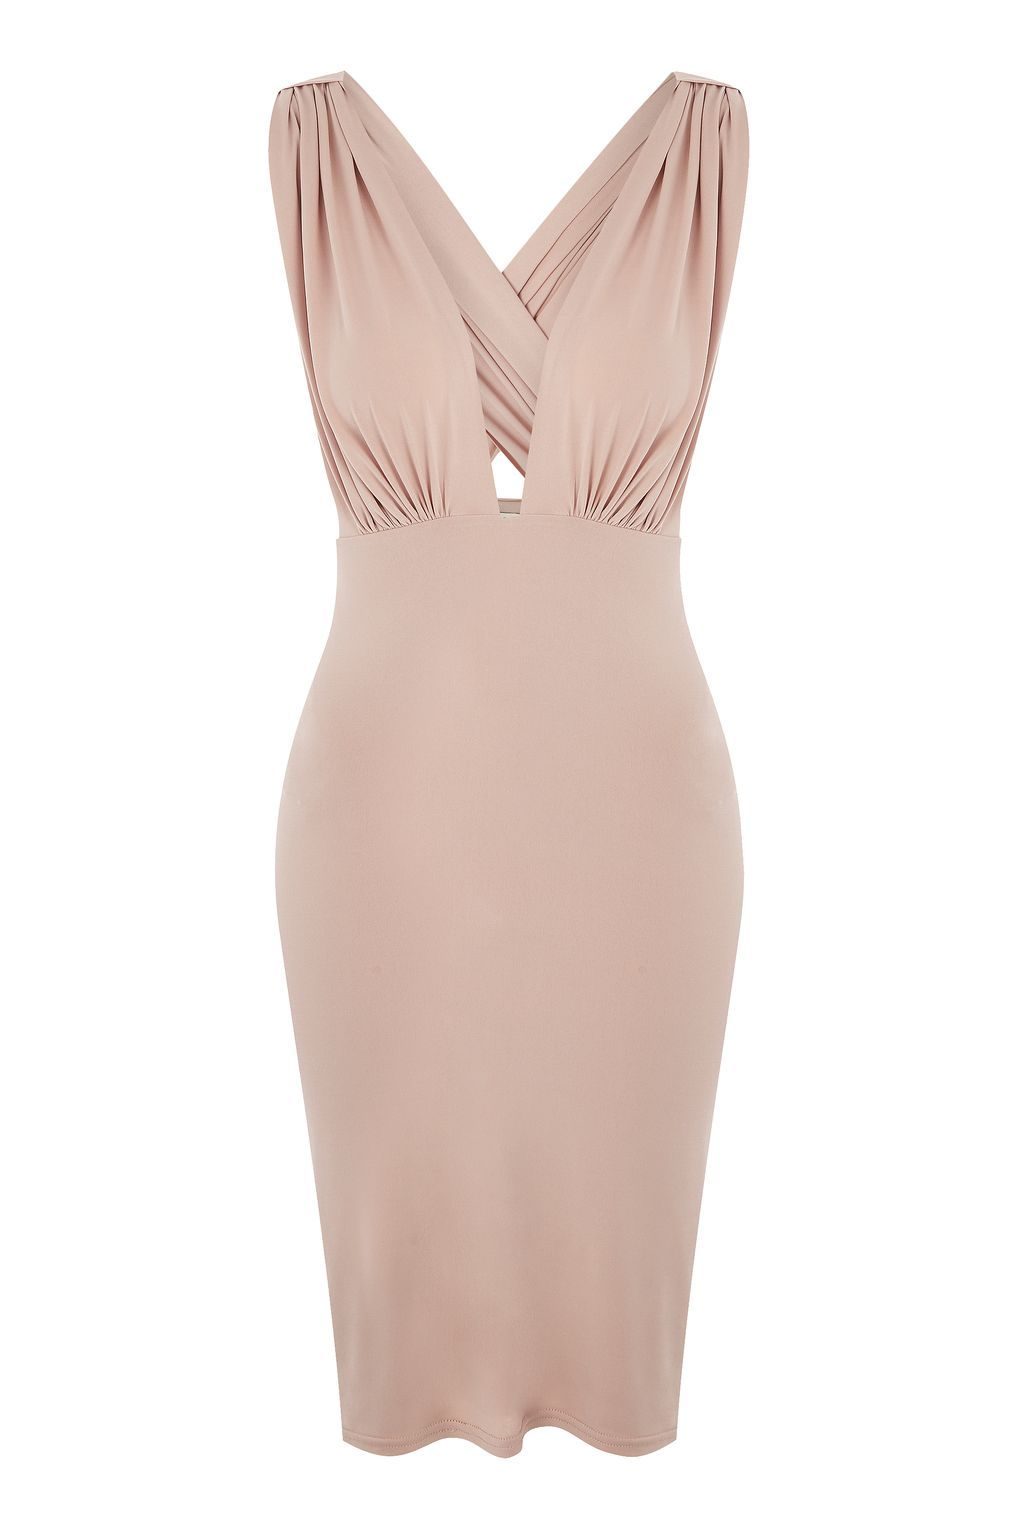 Plunge V-Neck Bodycon Dress by Love - Dresses - Clothing - Topshop Europe 6305da77a